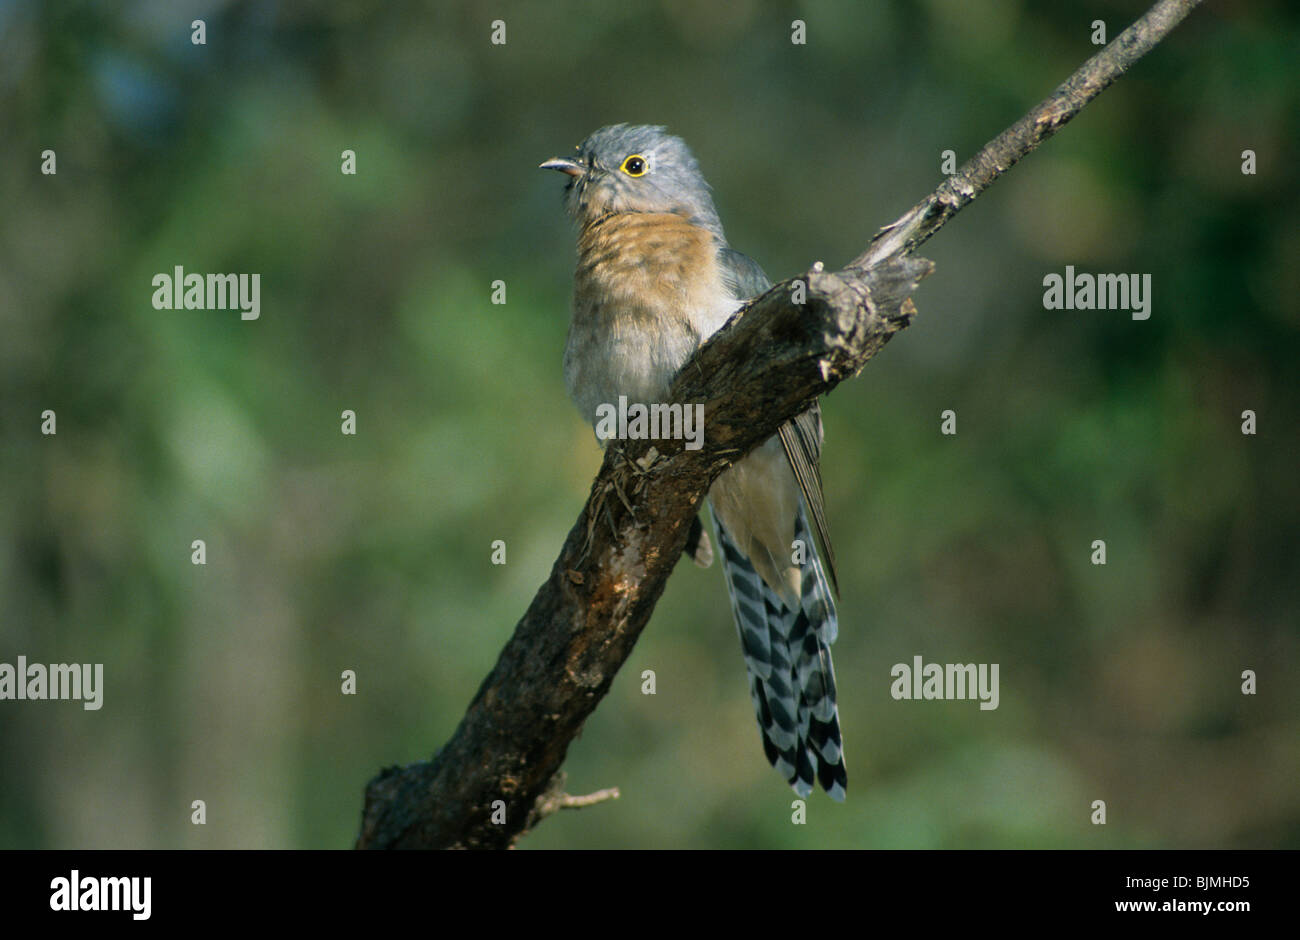 Fan-tailed cuckoo (Cacomantis flabelliformis), perched on branch, Australia - Stock Image